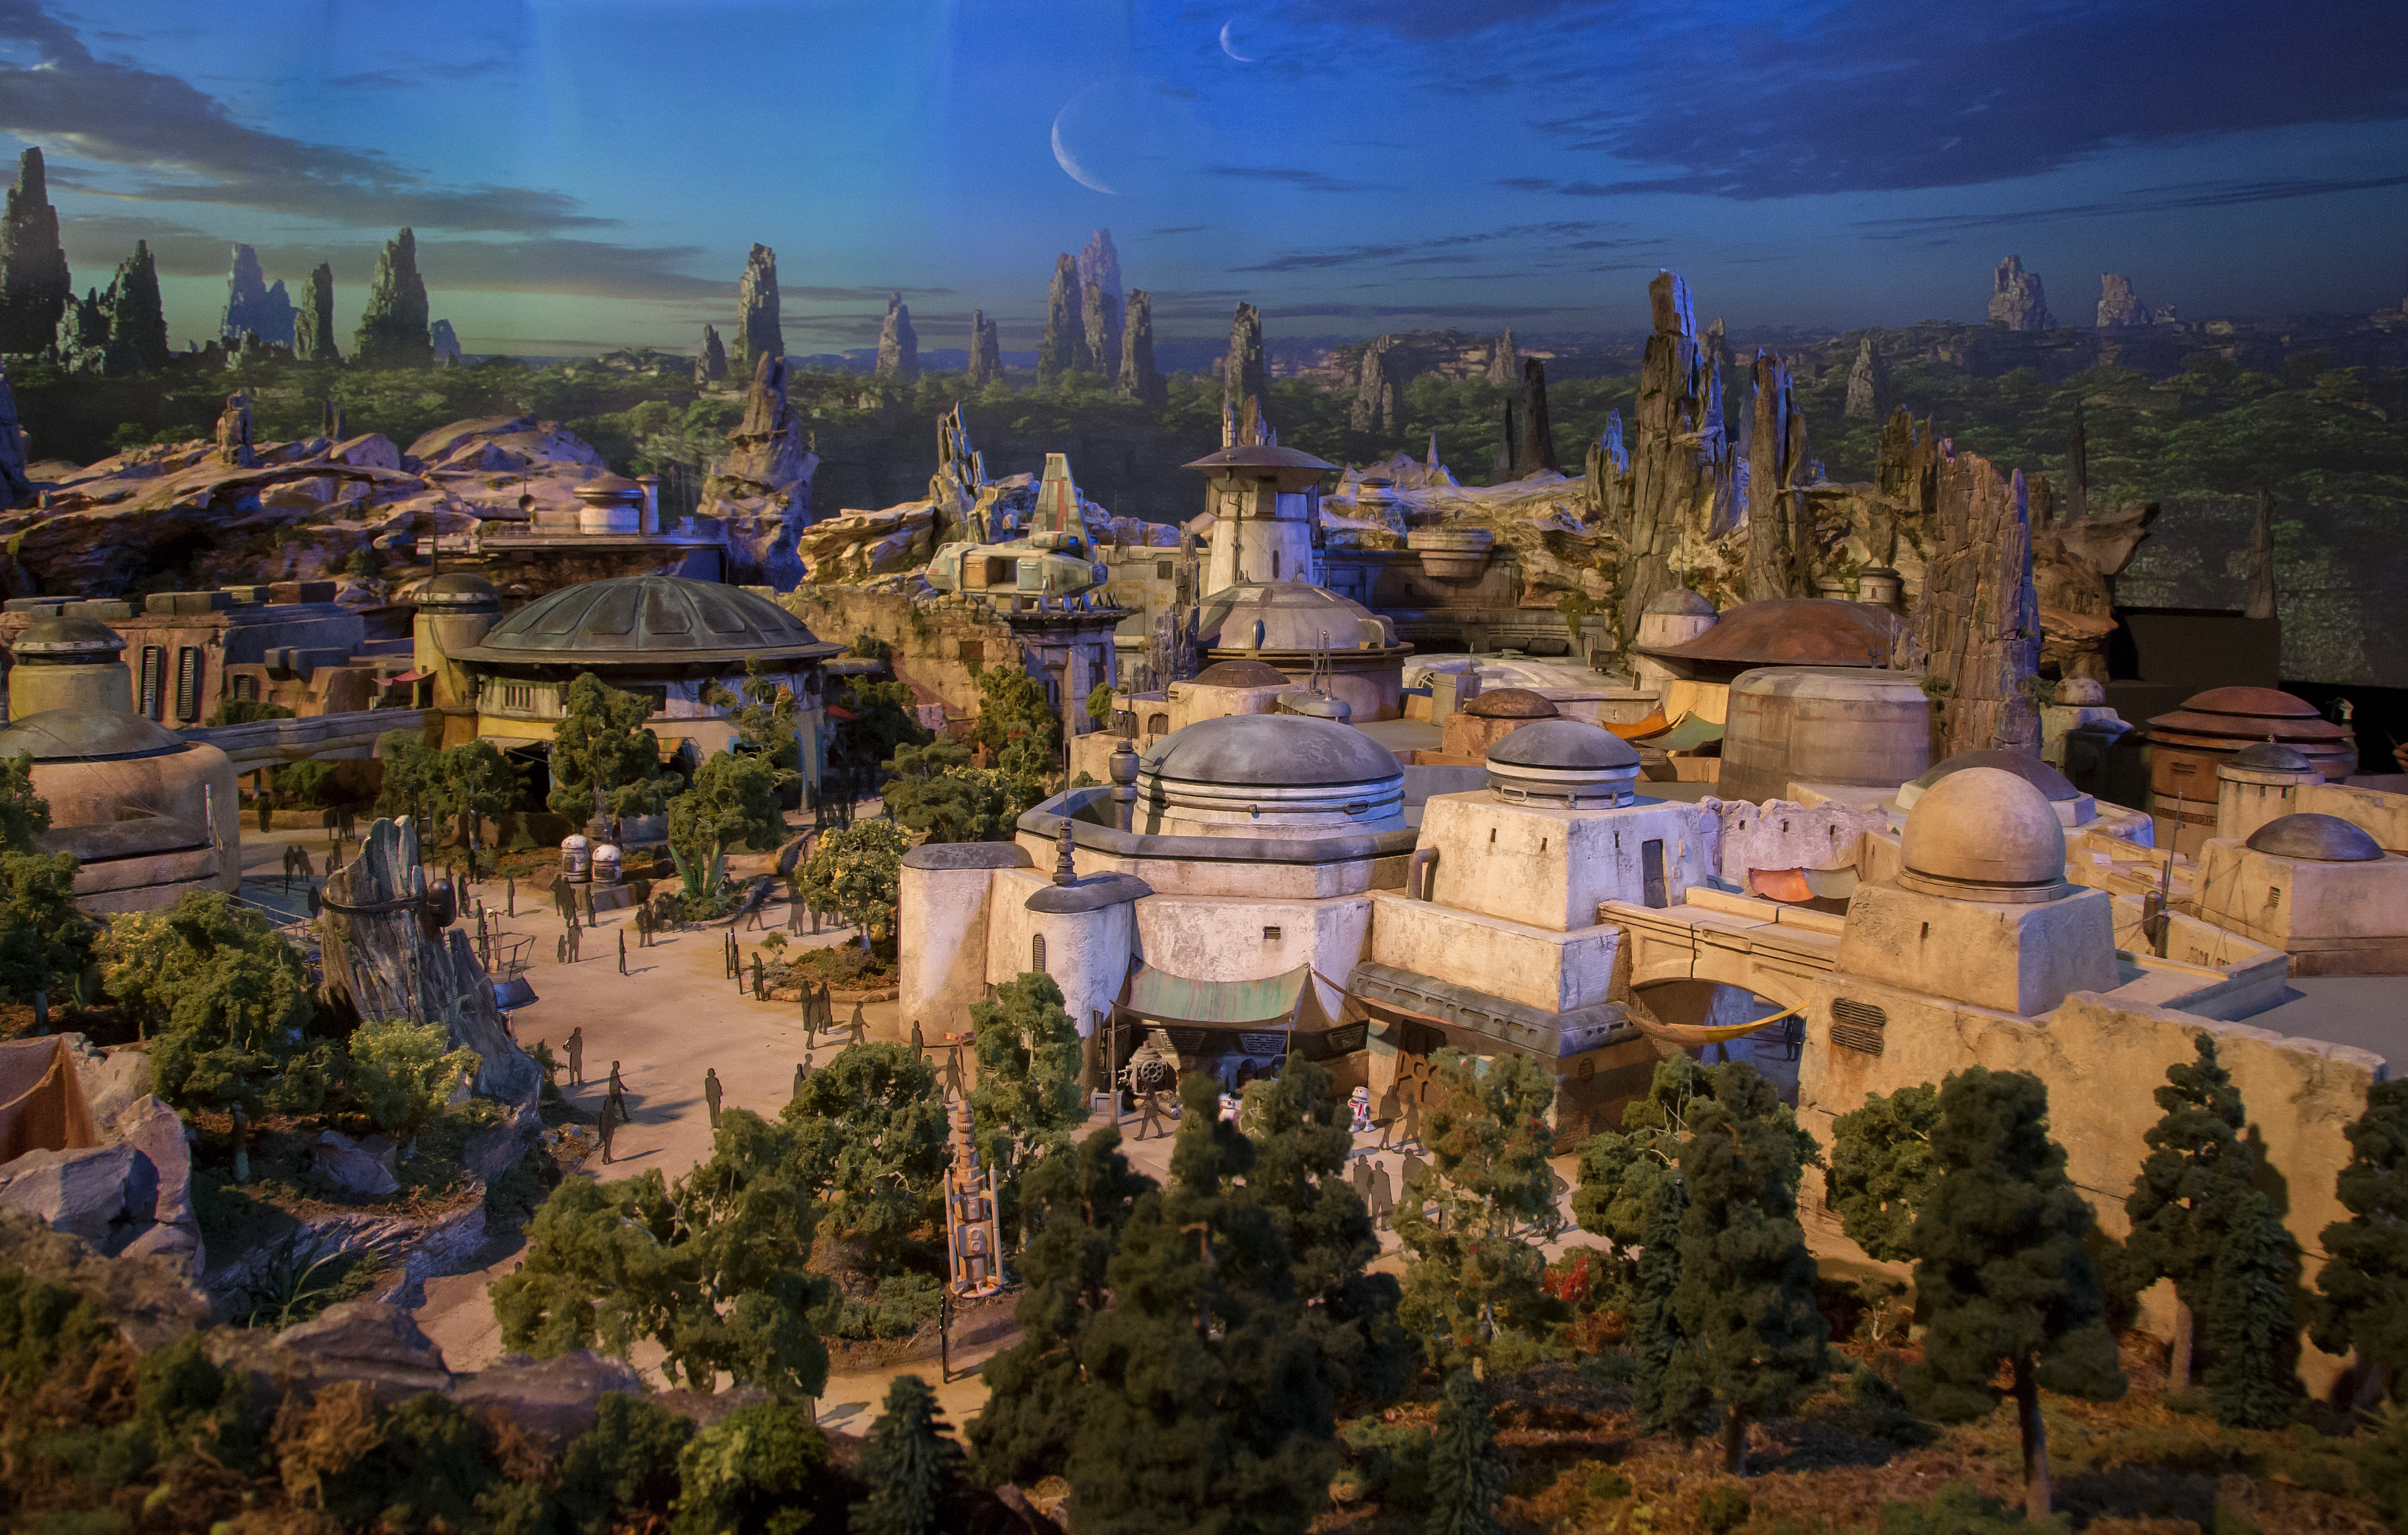 Star Wars Land model in detail